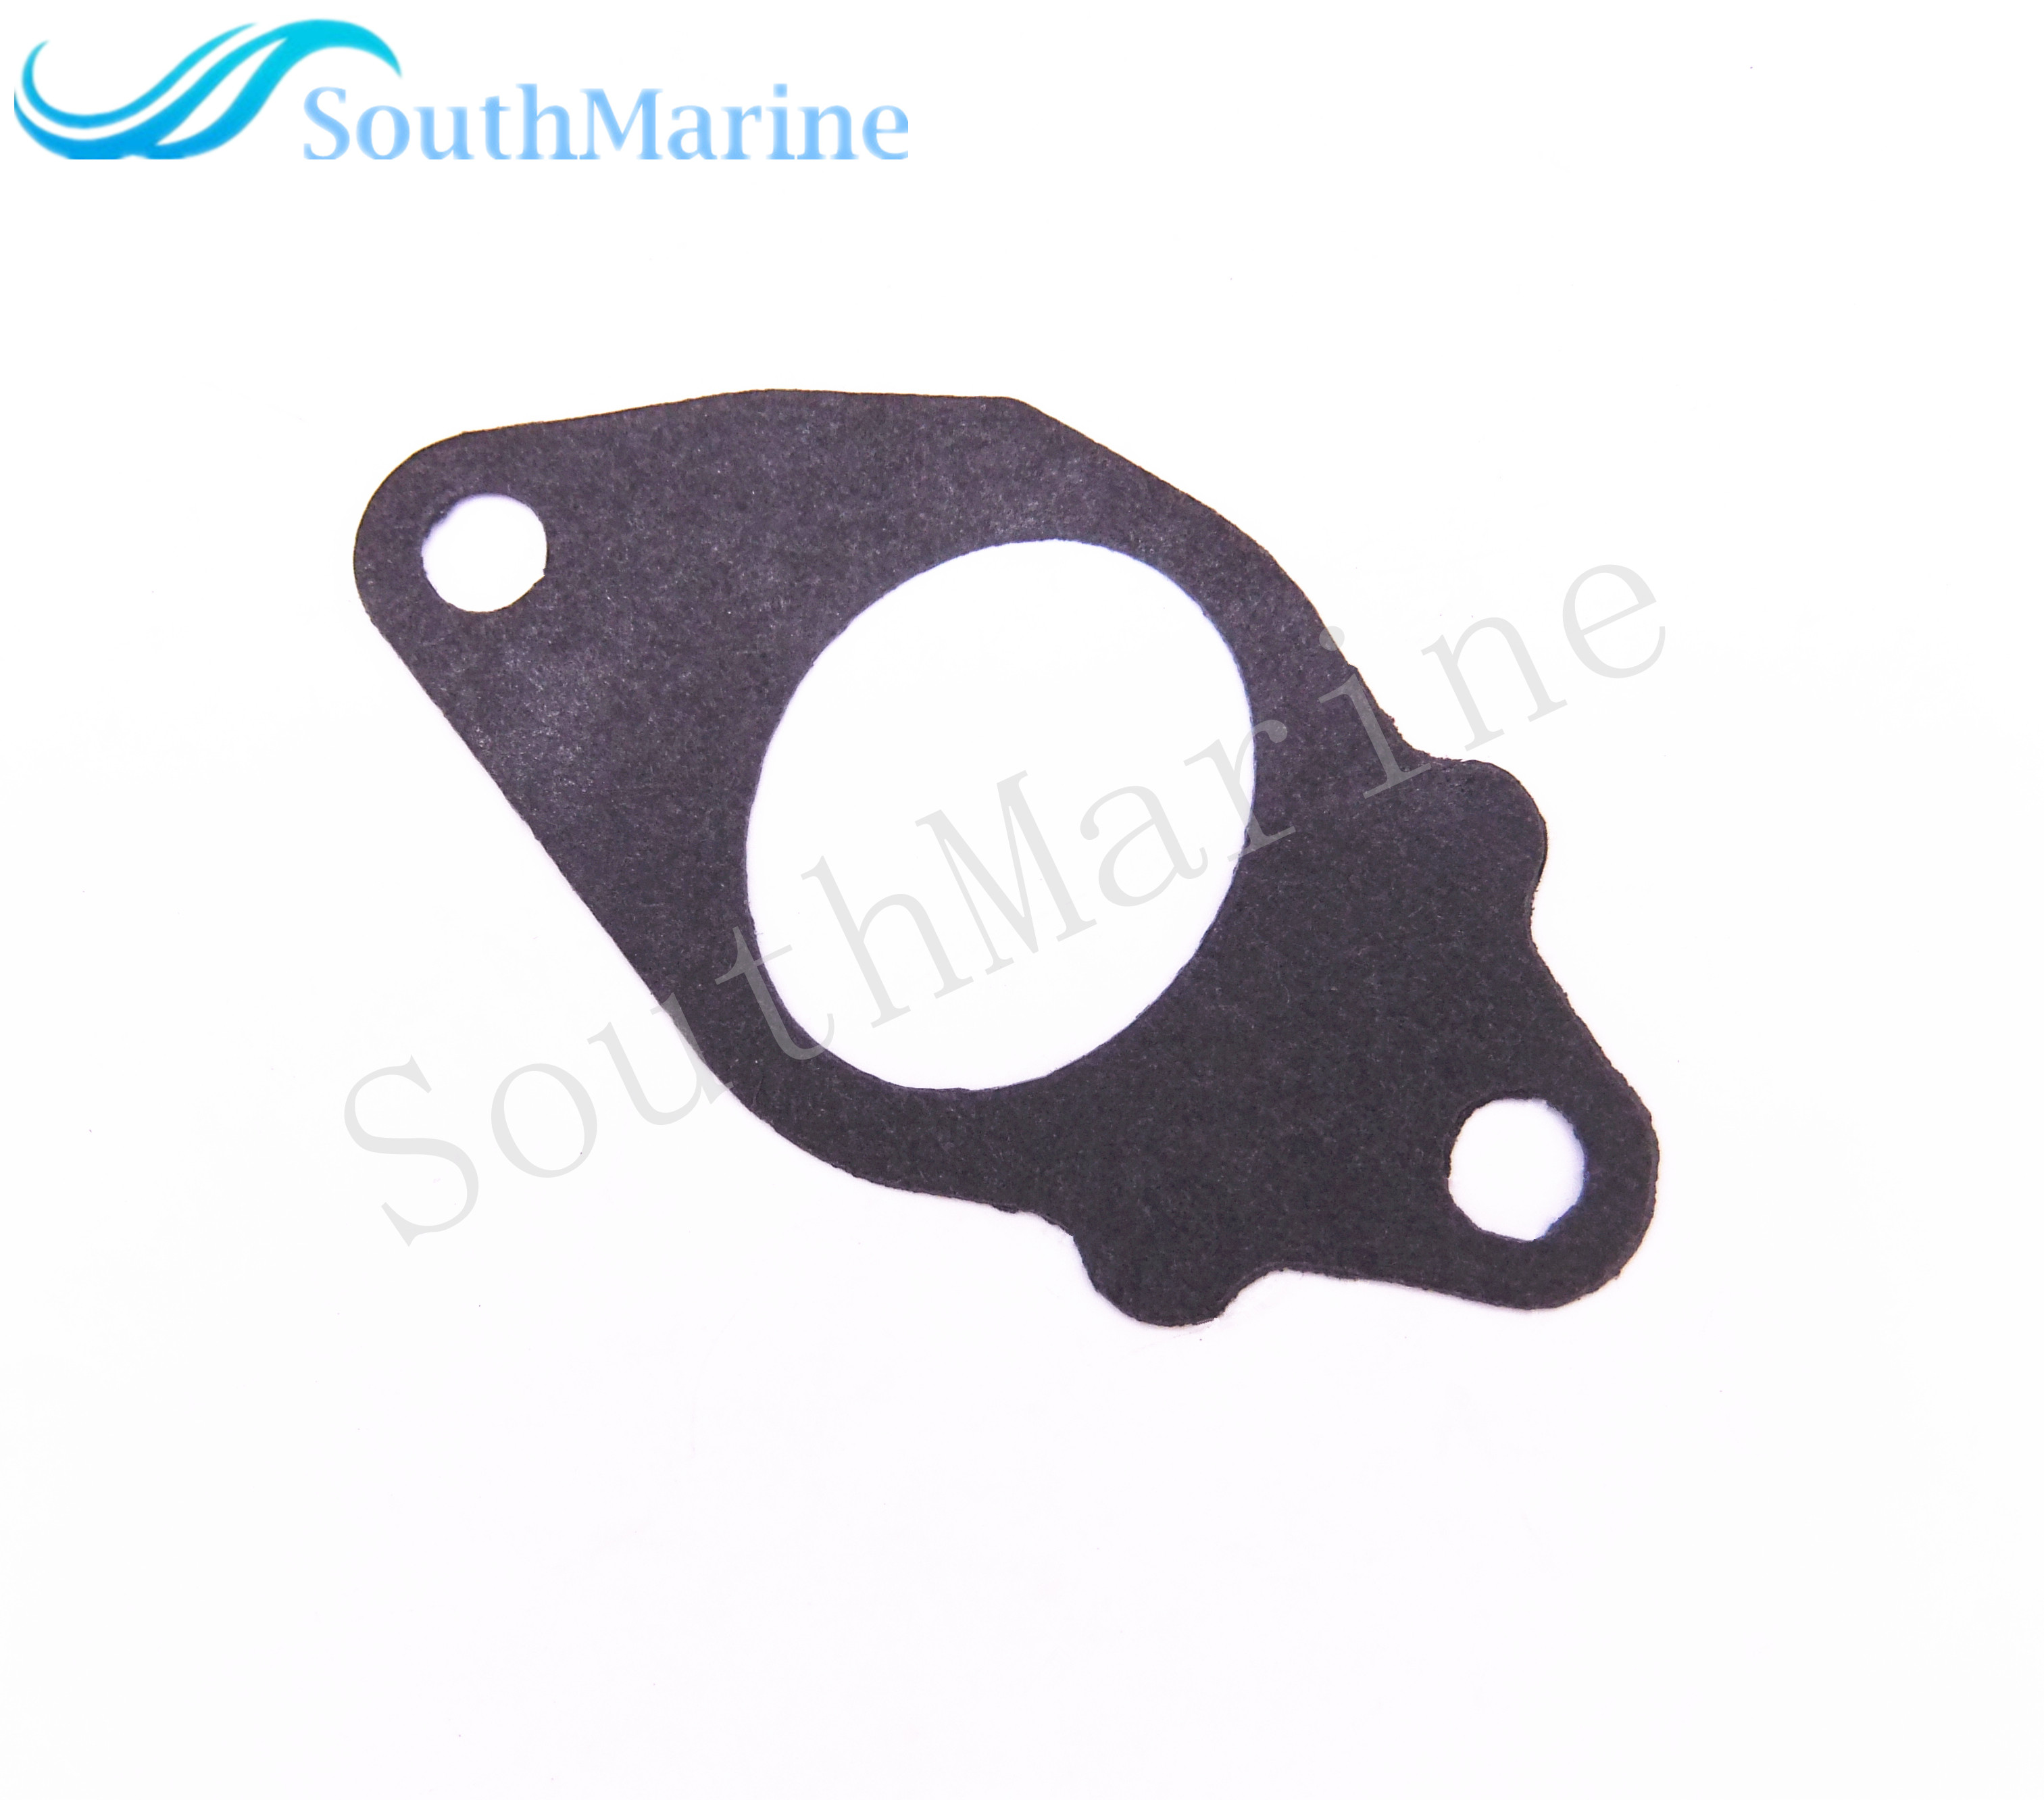 Outboard Engine Boat Motor 68D-E3645-A0 Manifold Gasket for Yamaha 4-Stroke F4  Free Shipping